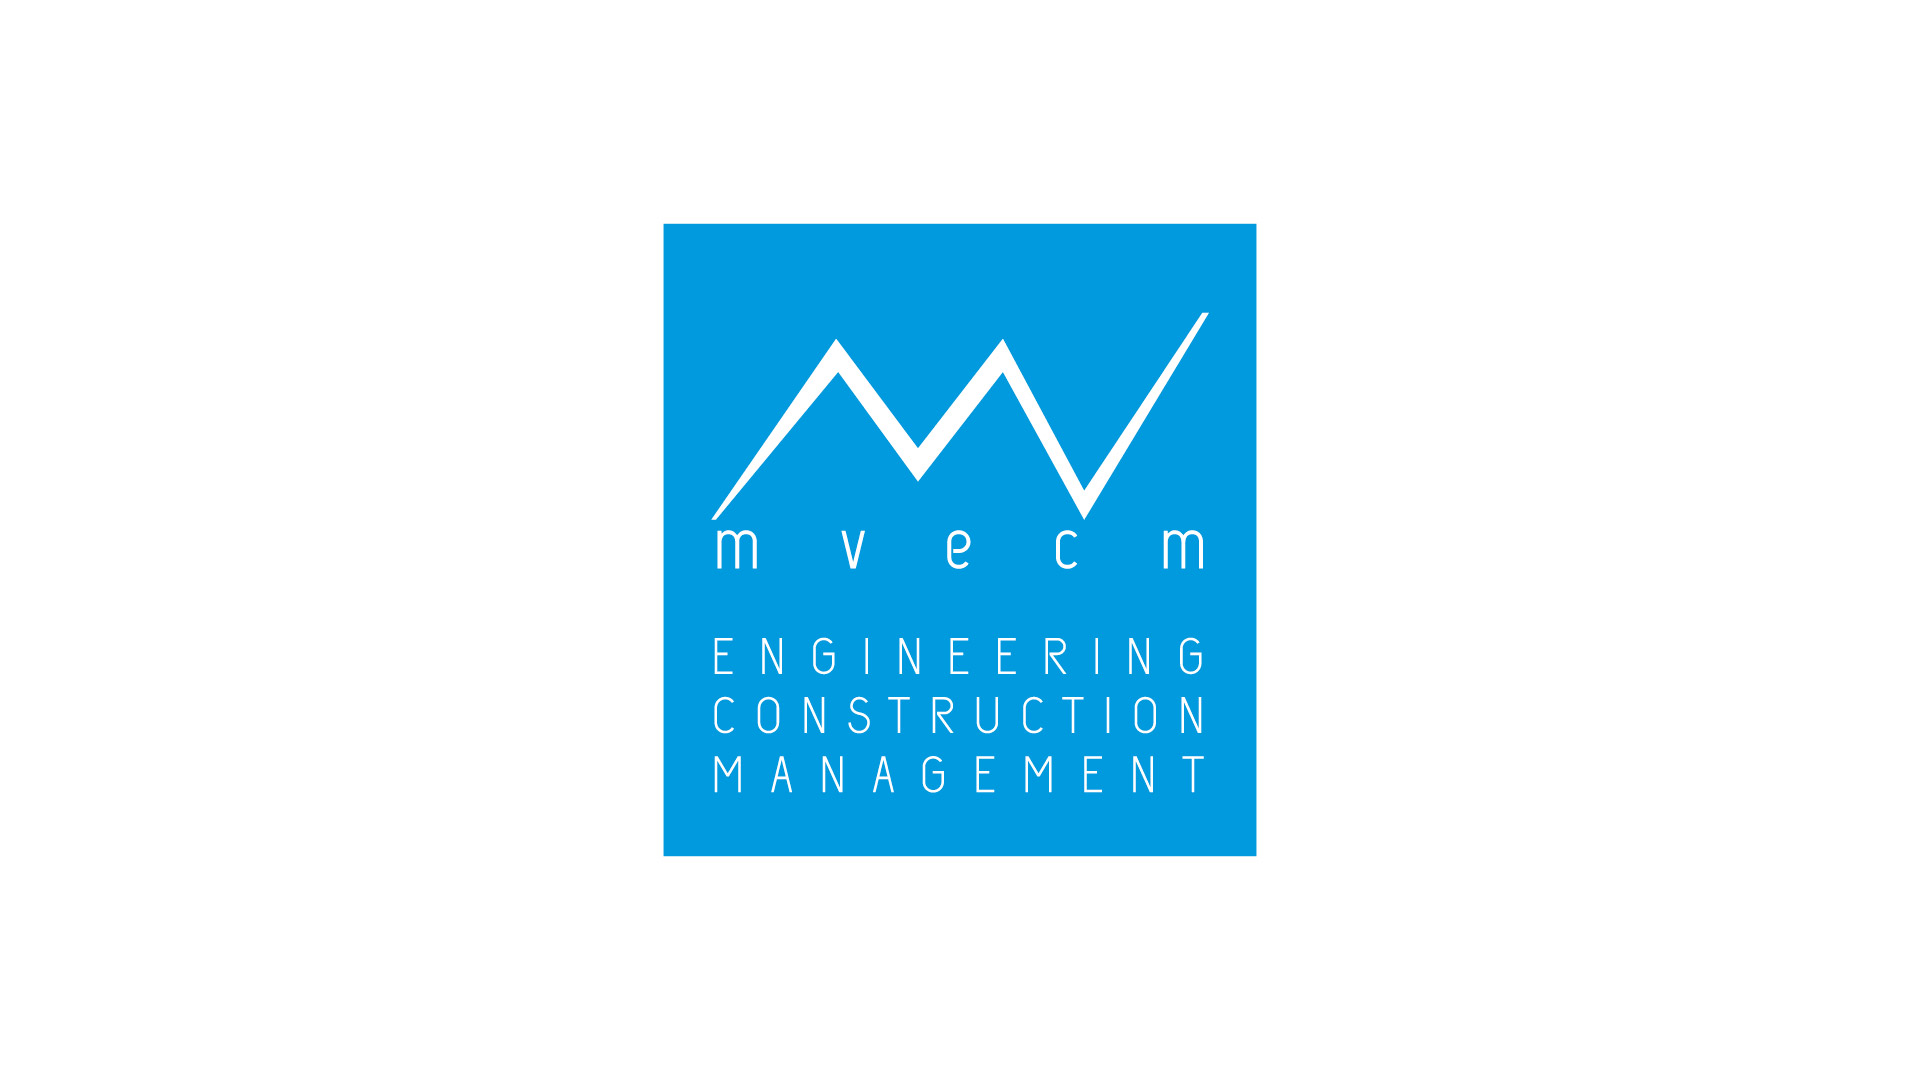 brand mvecm engineering e management